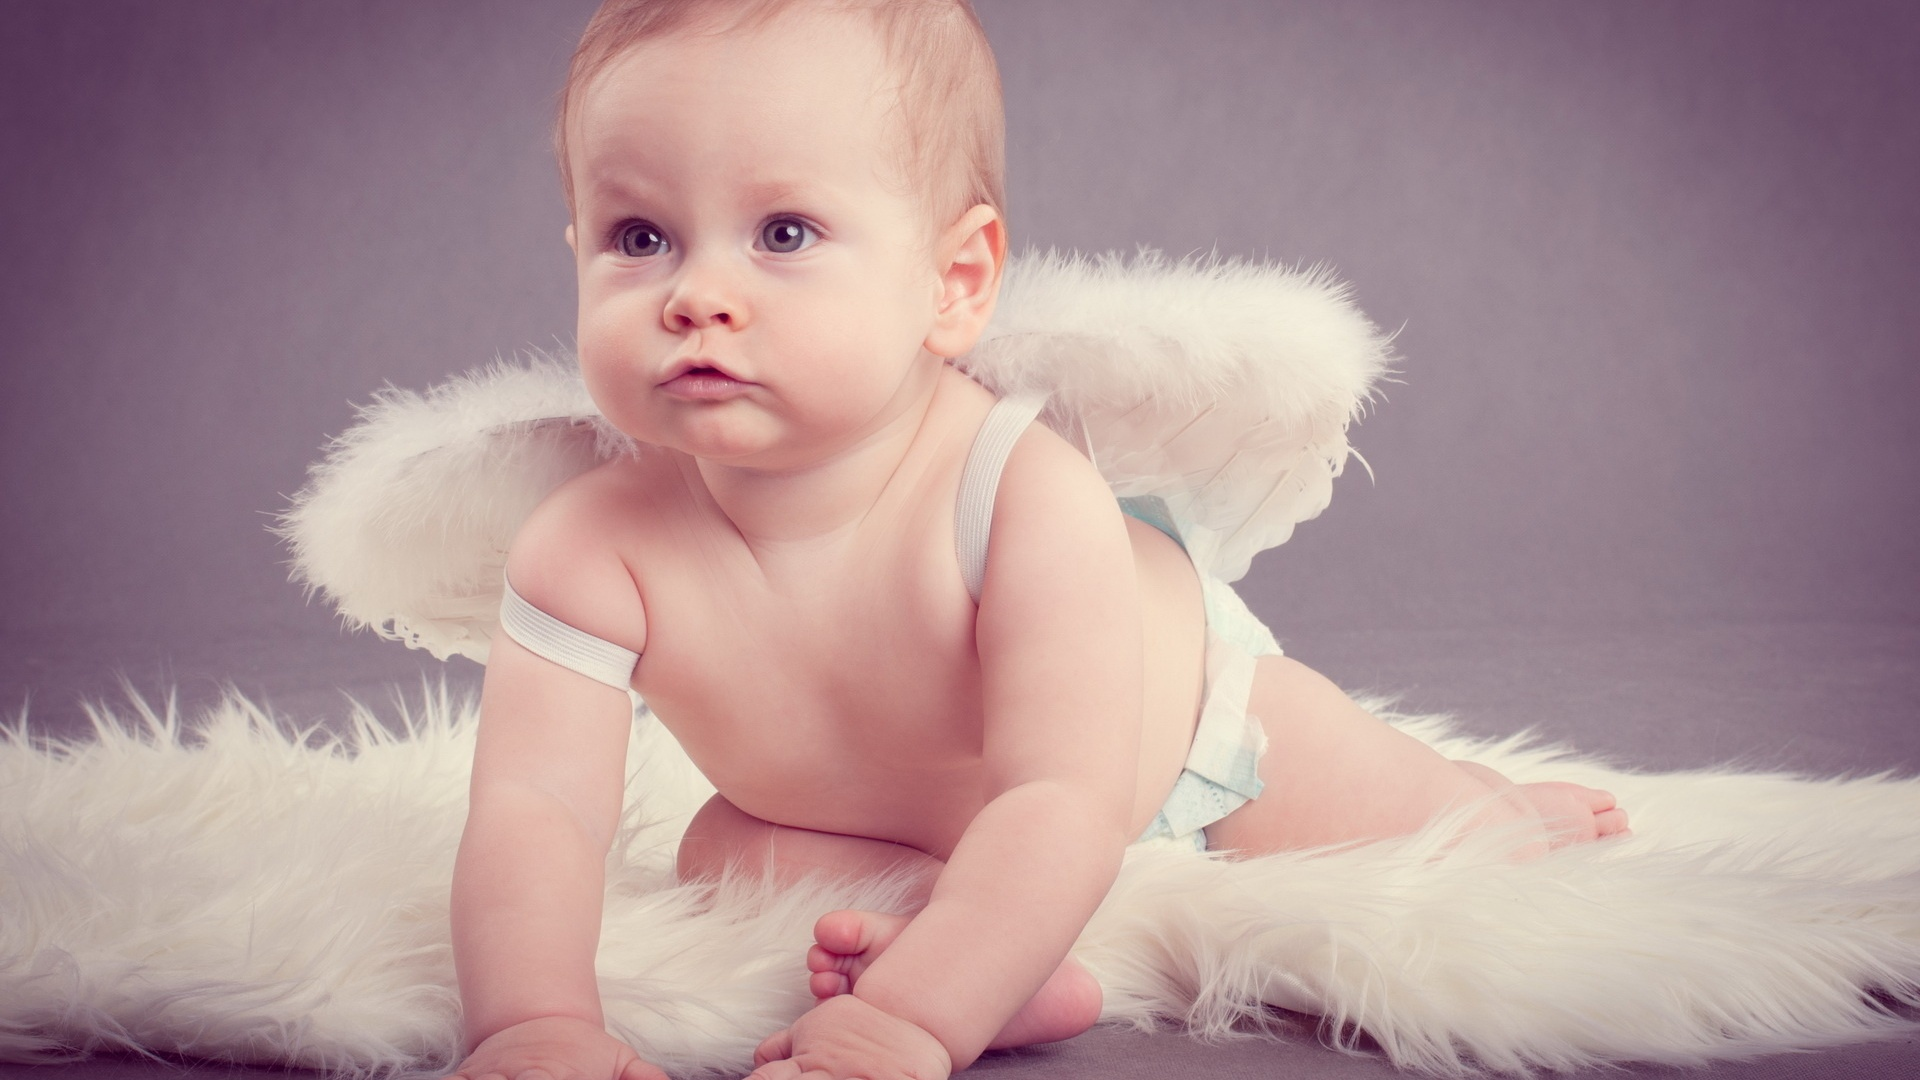 Baby Angel With Wings | 1920 x 1080 | Download | Close